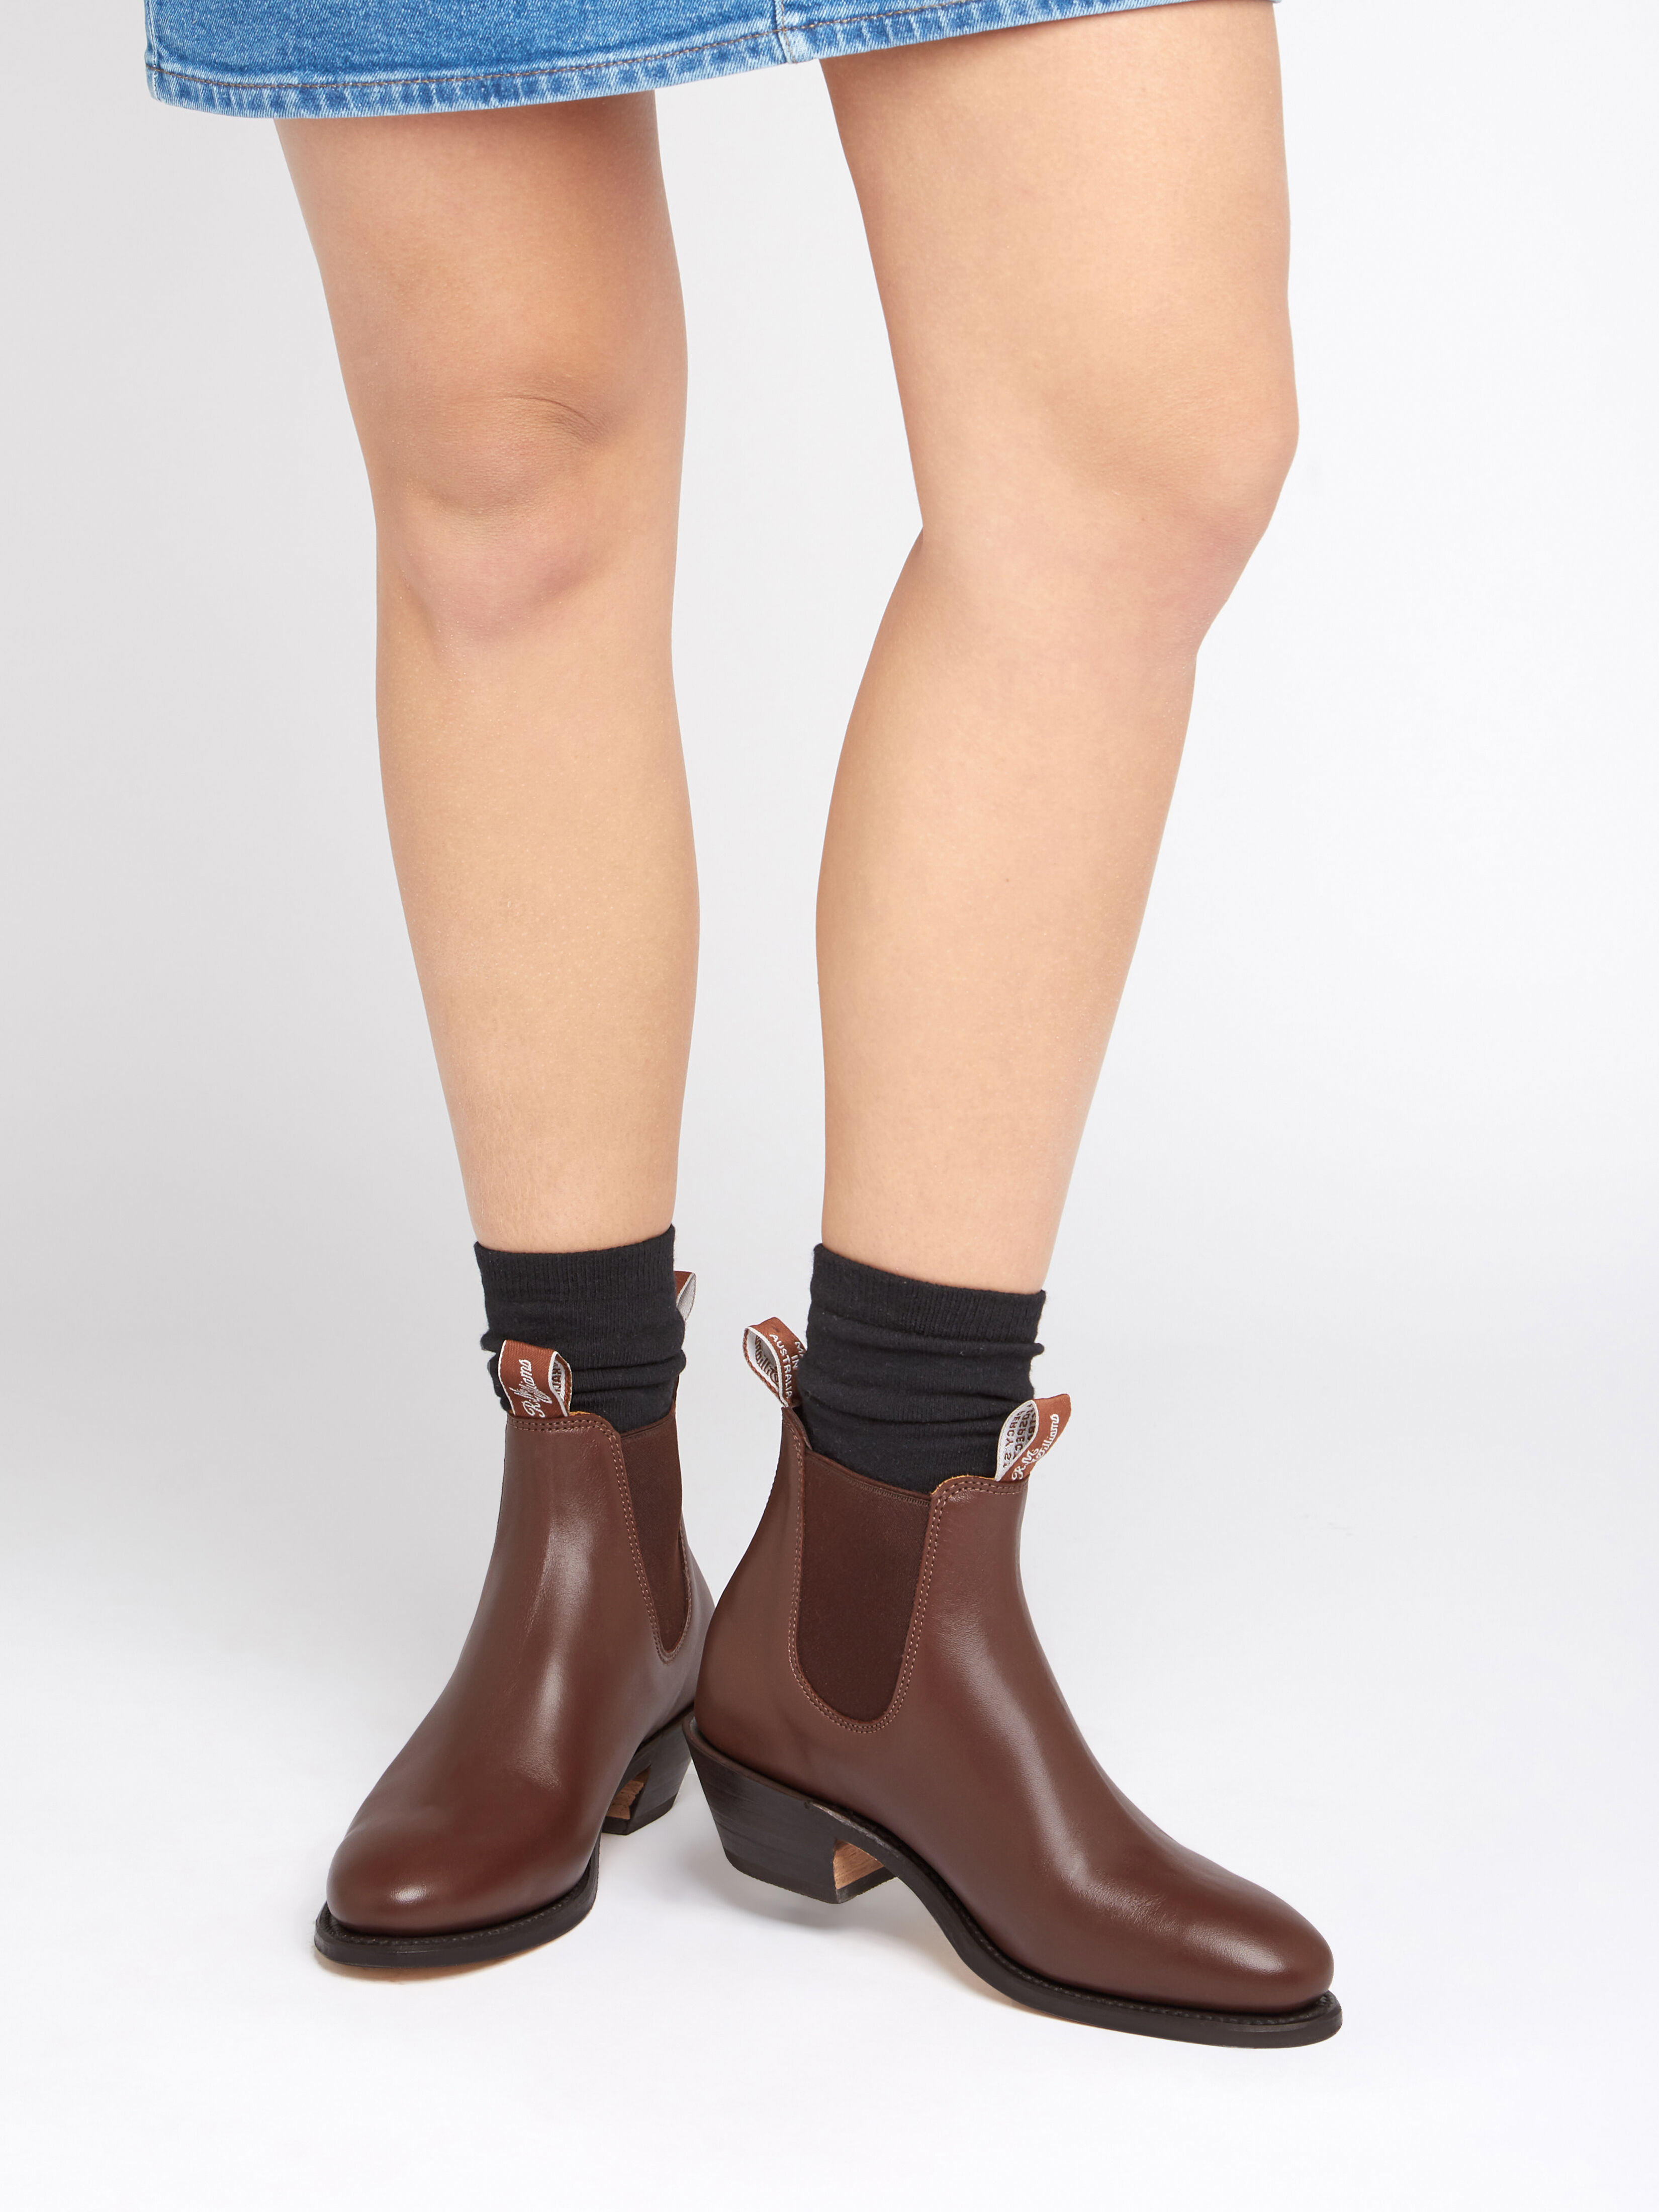 Adelaide Cuban Heel Women's Boots at R.M.Williams®